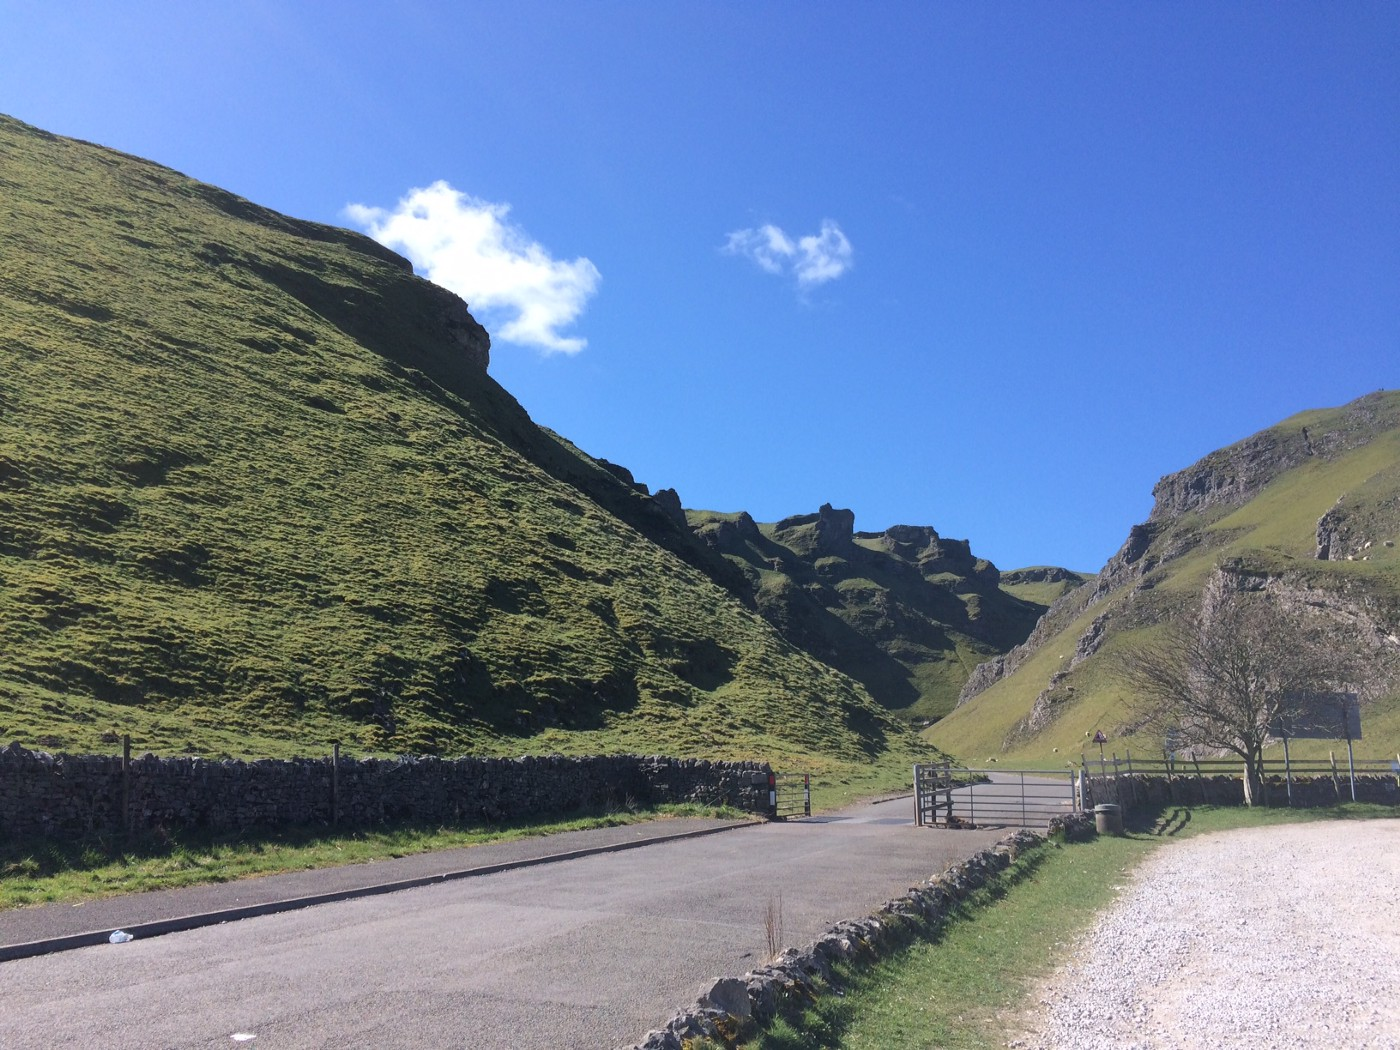 A landscape picture of the limestone gorge Winnats Pass in Derbyshire